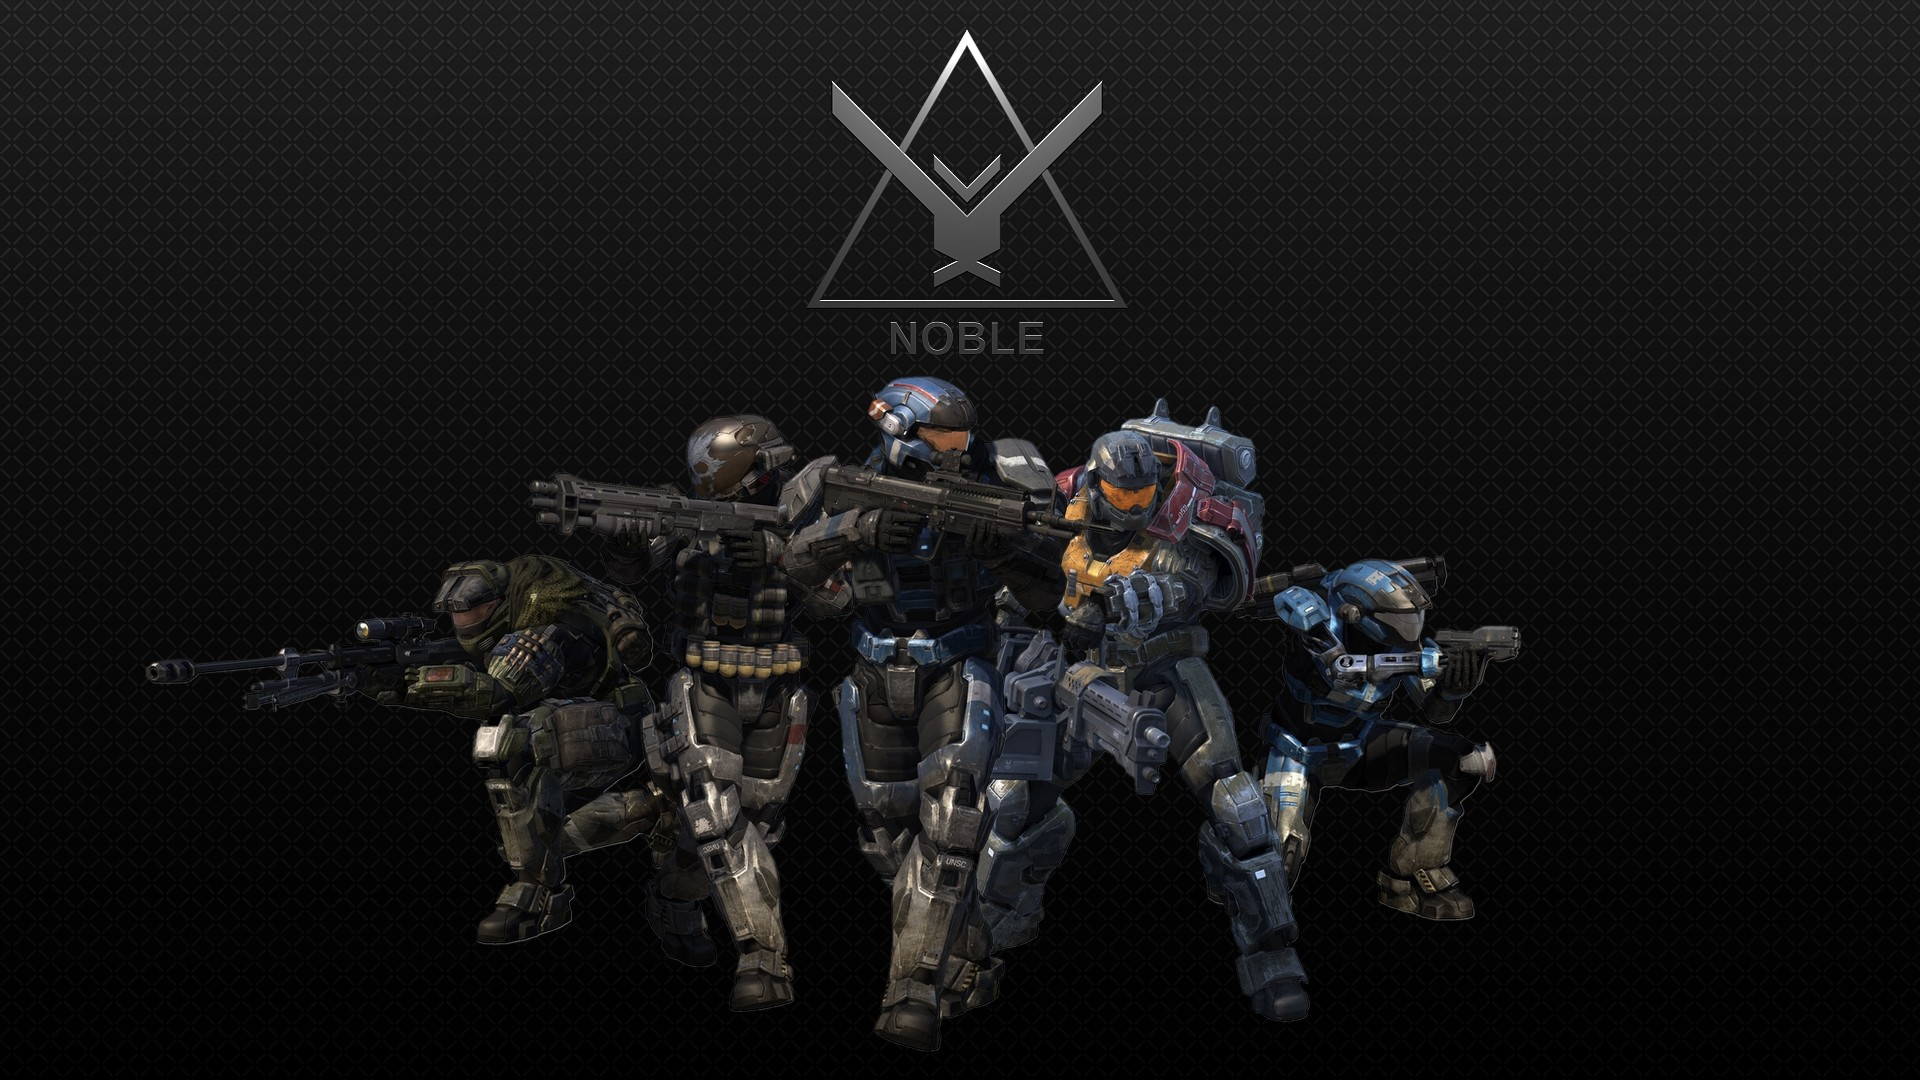 Halo Reach Wallpaper (81+ images)